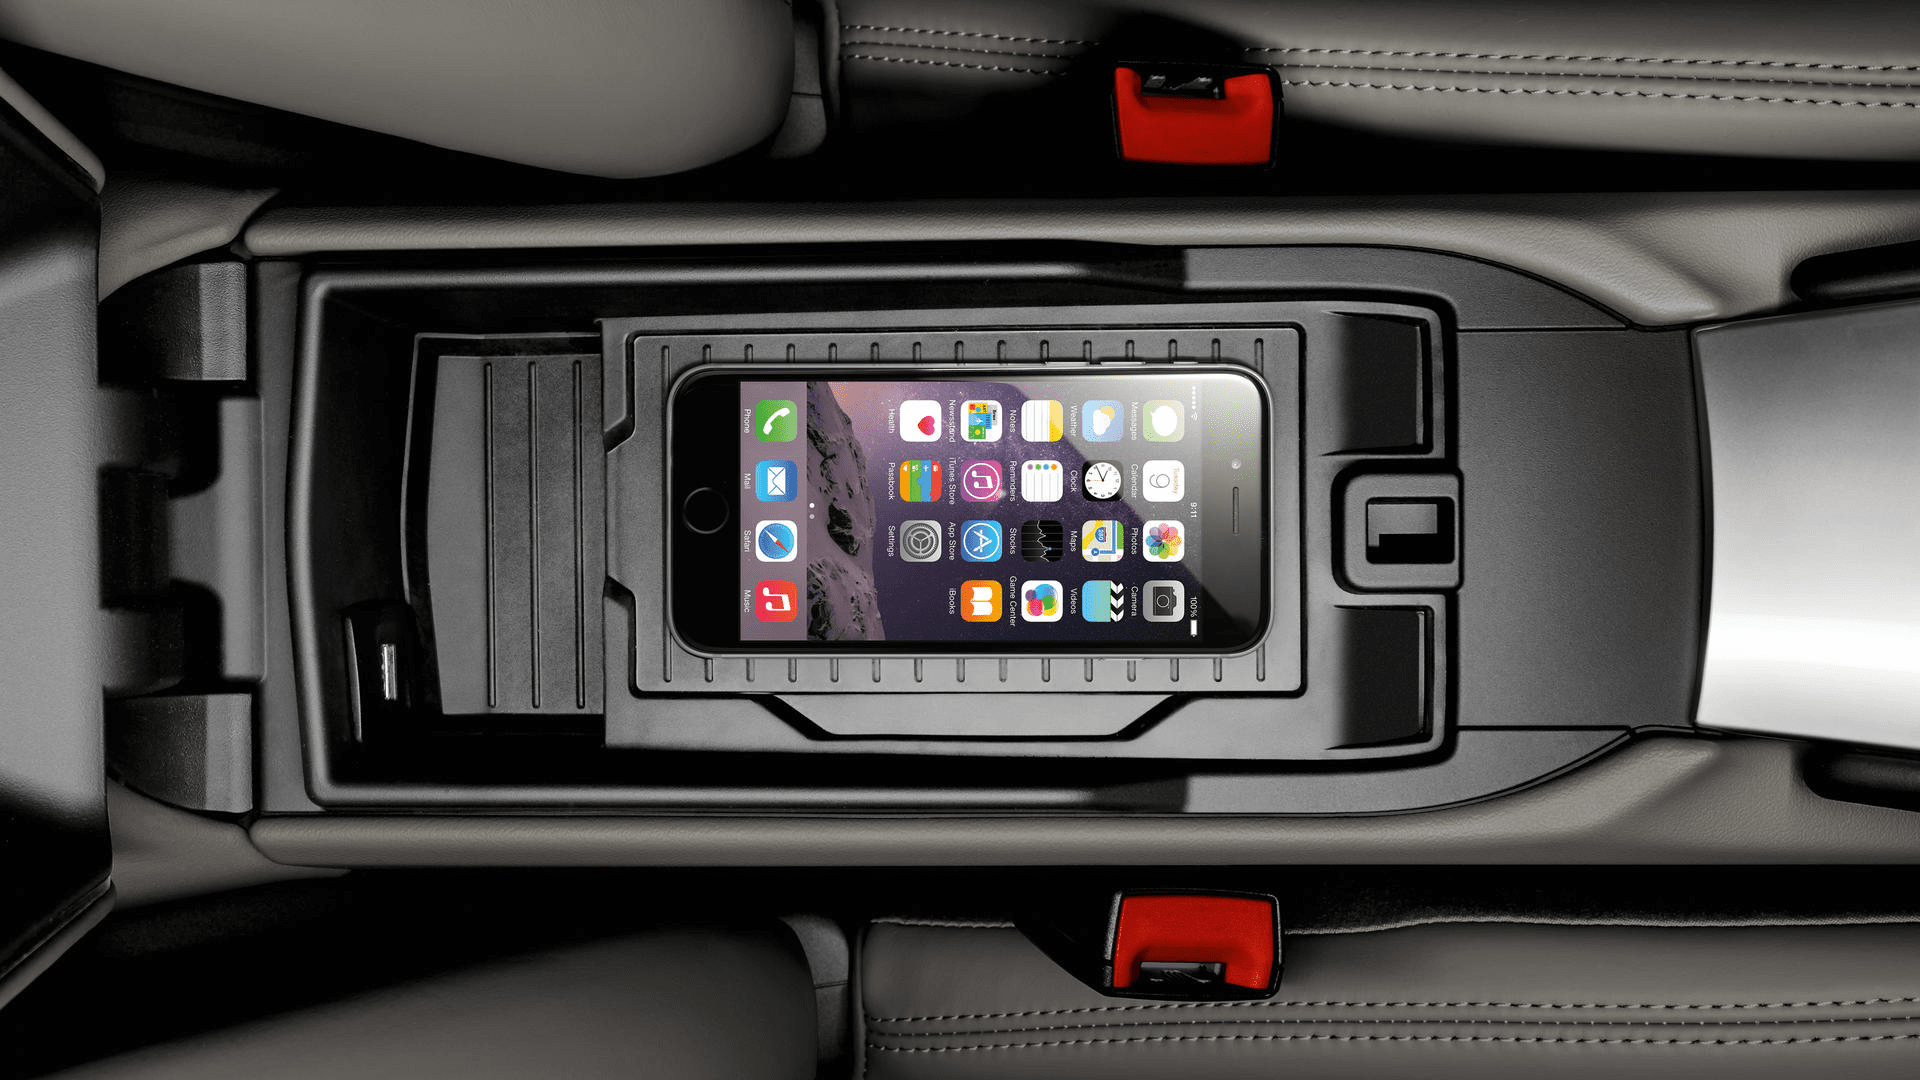 Porsche 911 iphone interior